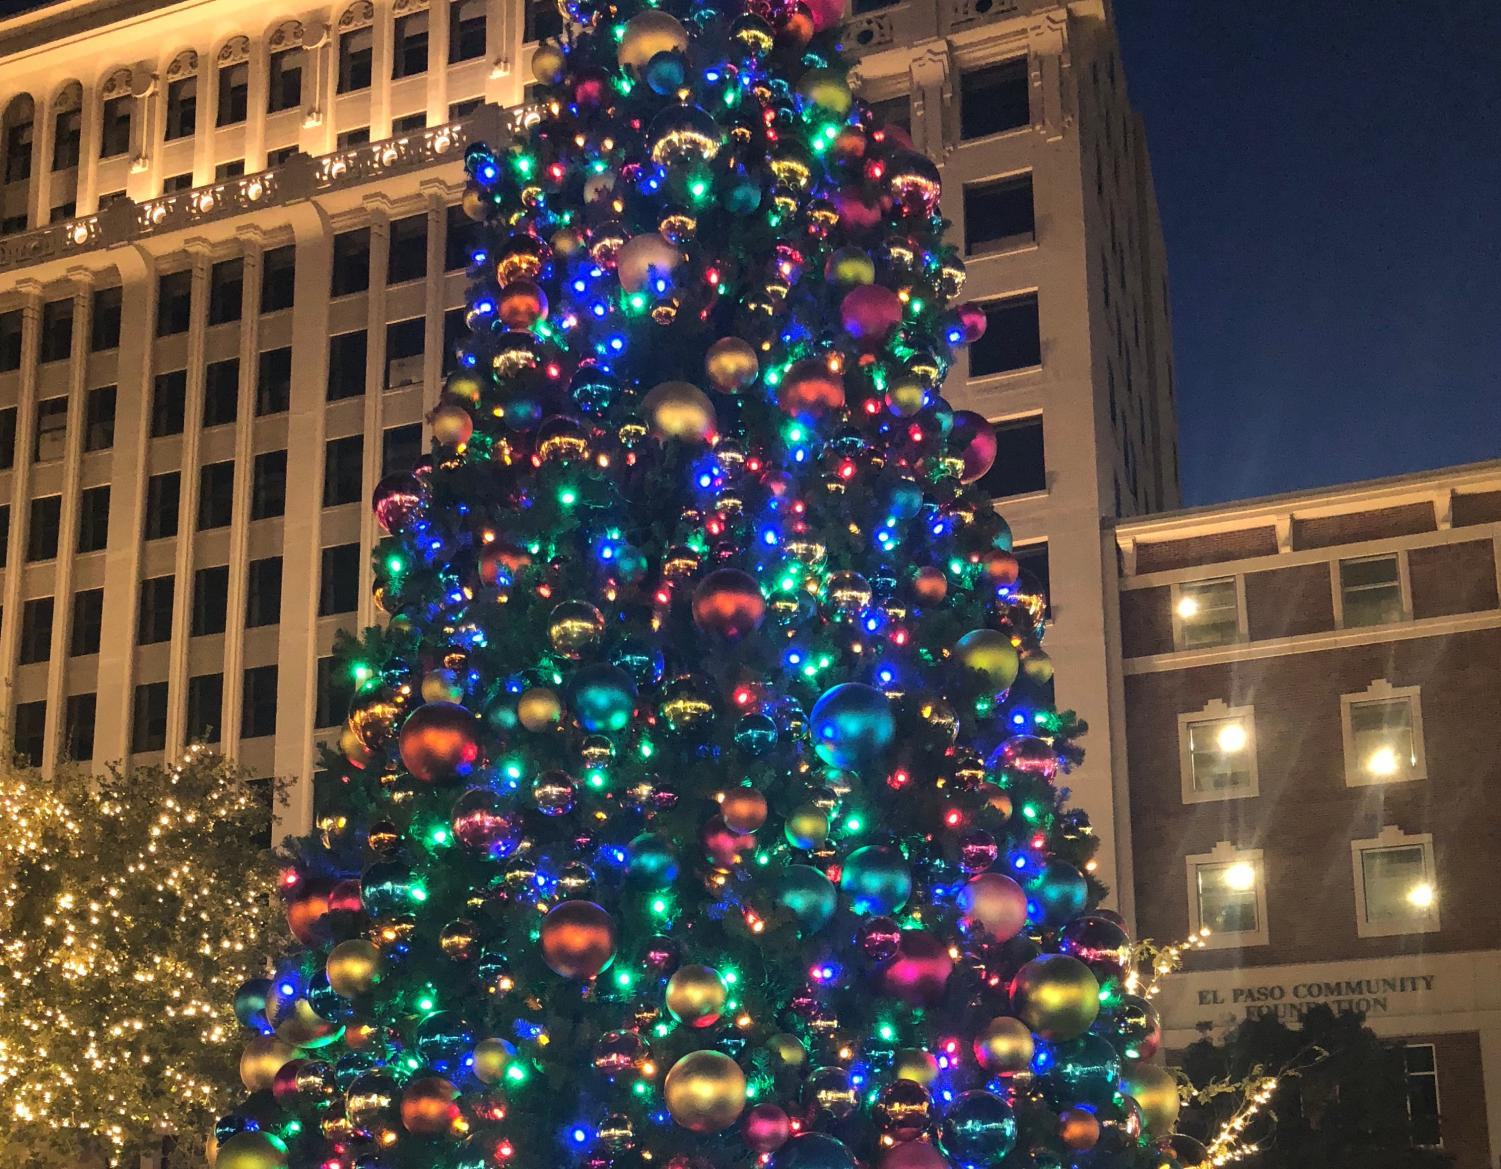 As shown in this photo from Nov. 17, 2018, the city of El Paso holds its annual